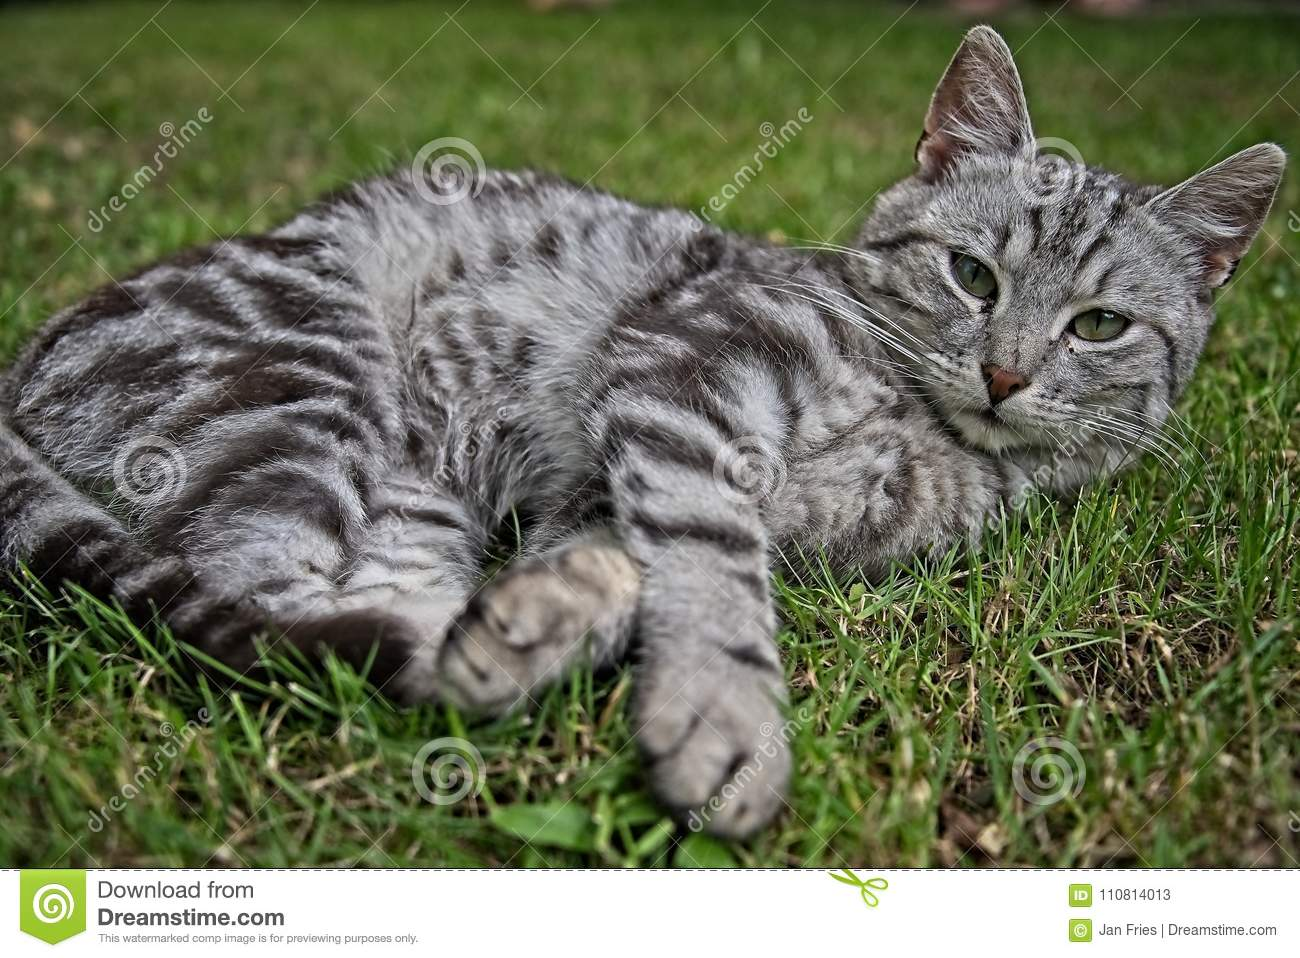 silver tabby cat stock image image of kitten nature 110814013